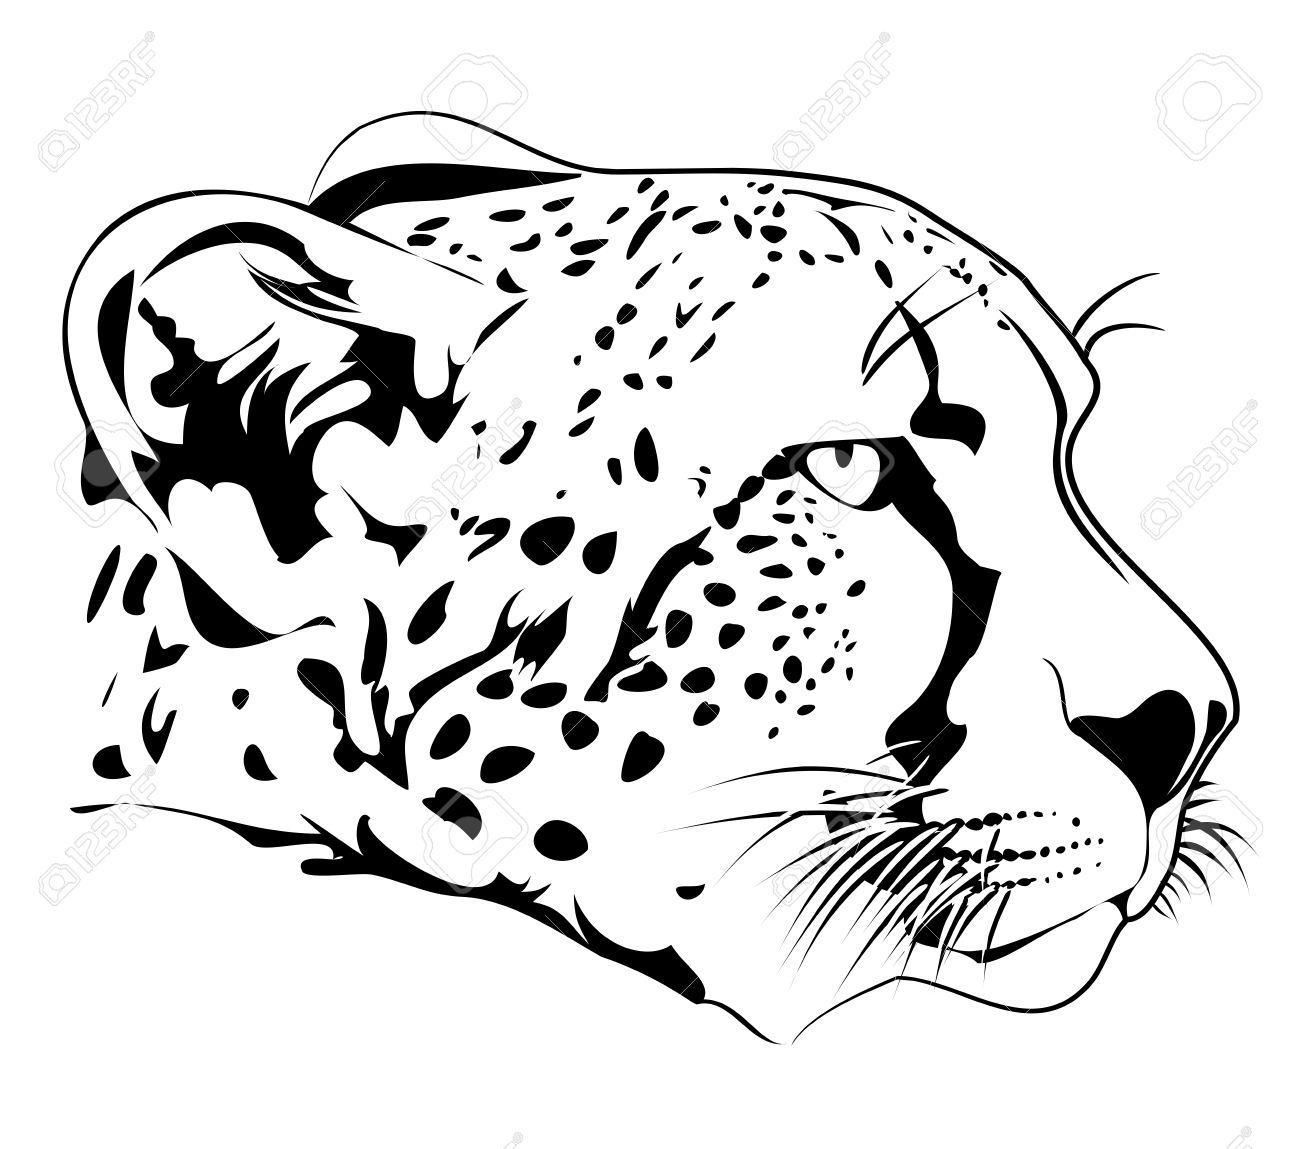 cheetah head royalty free cliparts vectors and stock